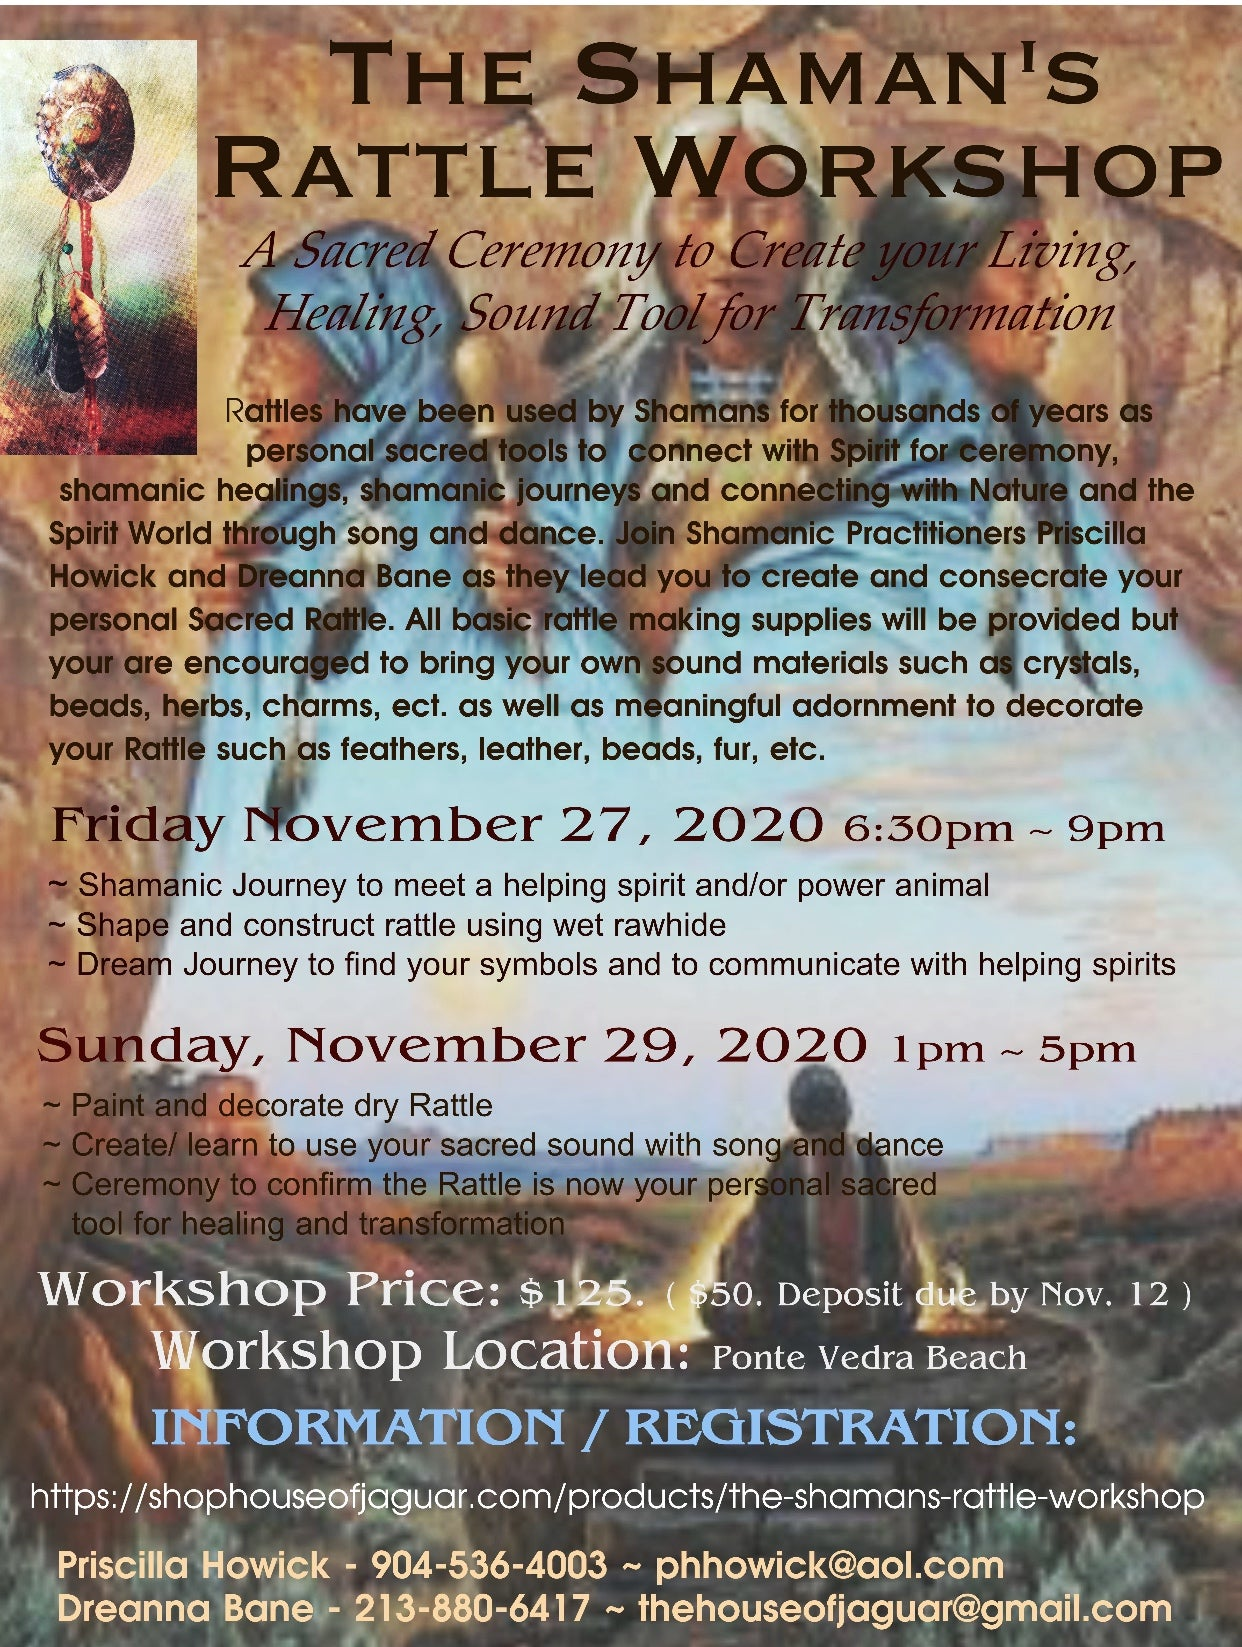 The Shaman's Rattle Workshop November 27, 2020 and November 29, 2020